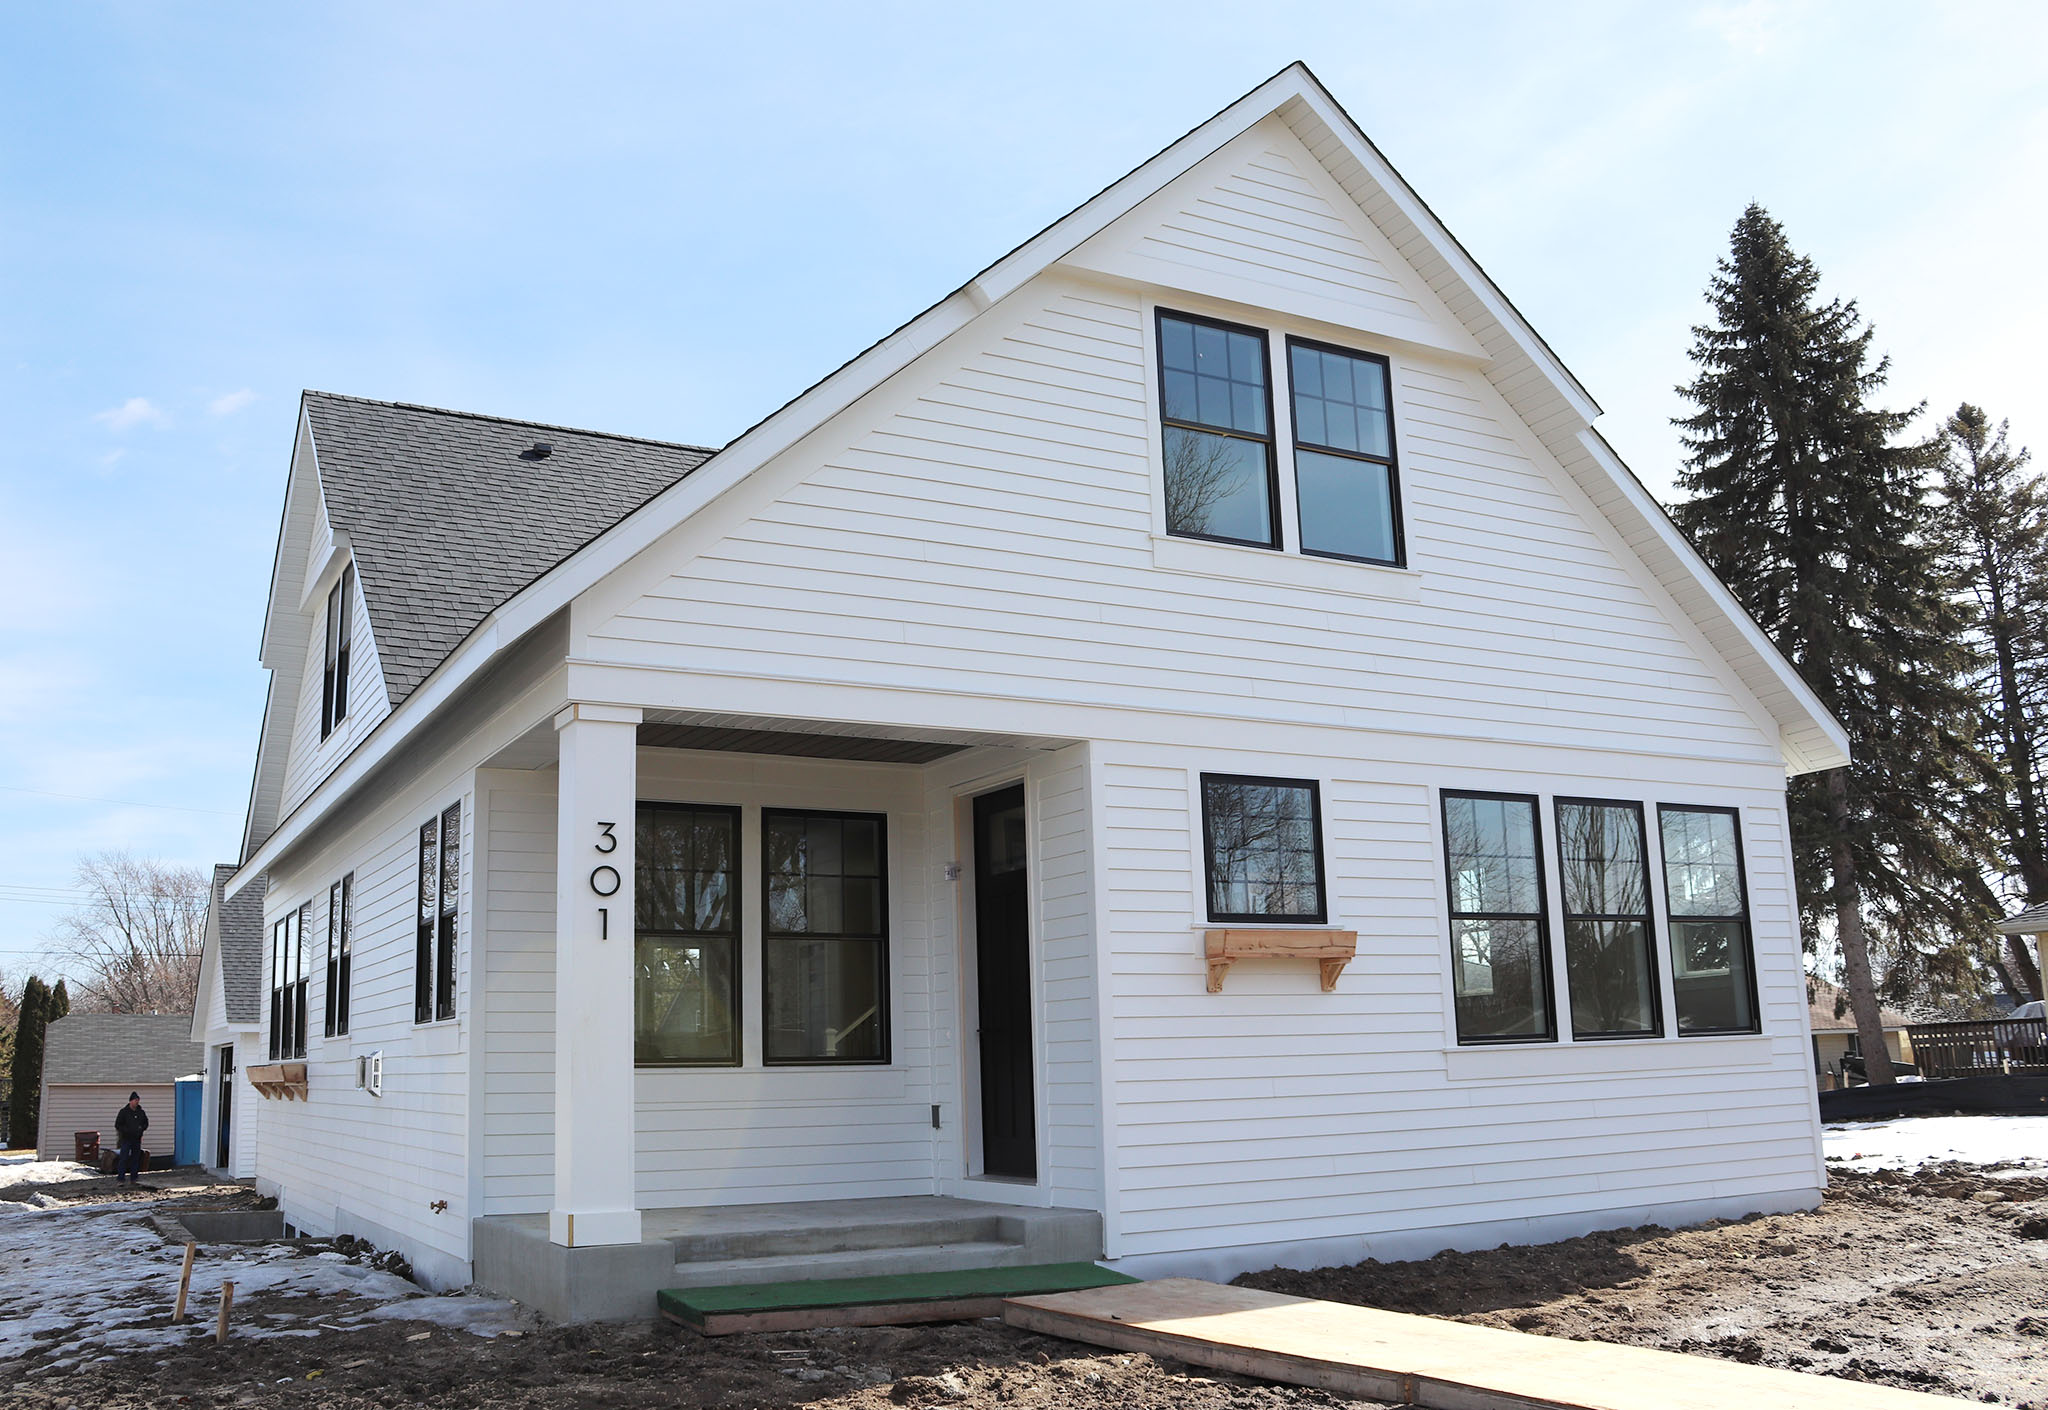 Quaint city lot 1-1/2 story house with LP Smartside and Marvin windows with black trim